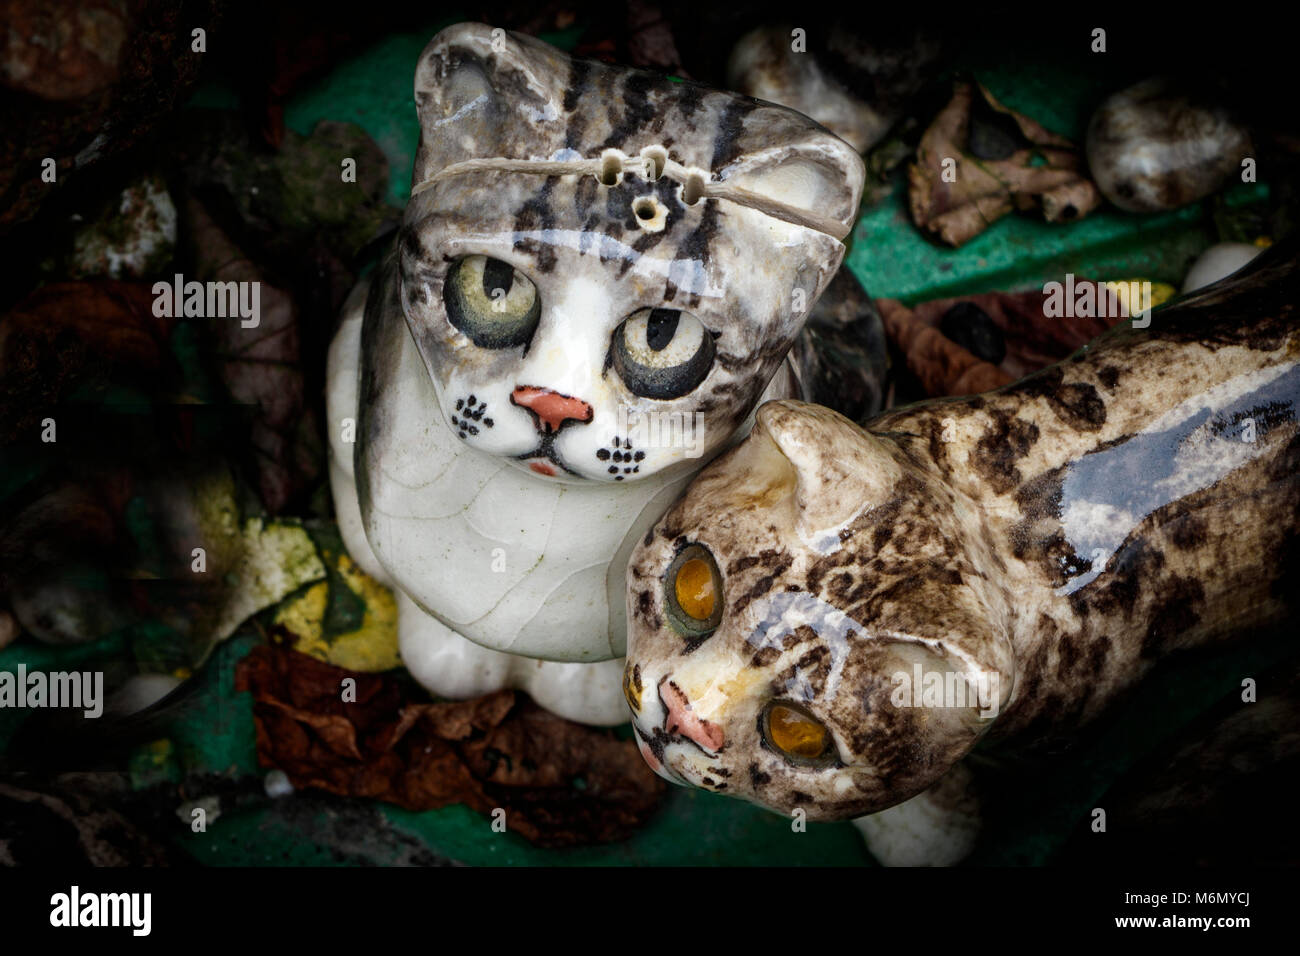 A collection of Winstanley pottery cats arranged outdoors. North Walsham, Norfolk, UK. - Stock Image